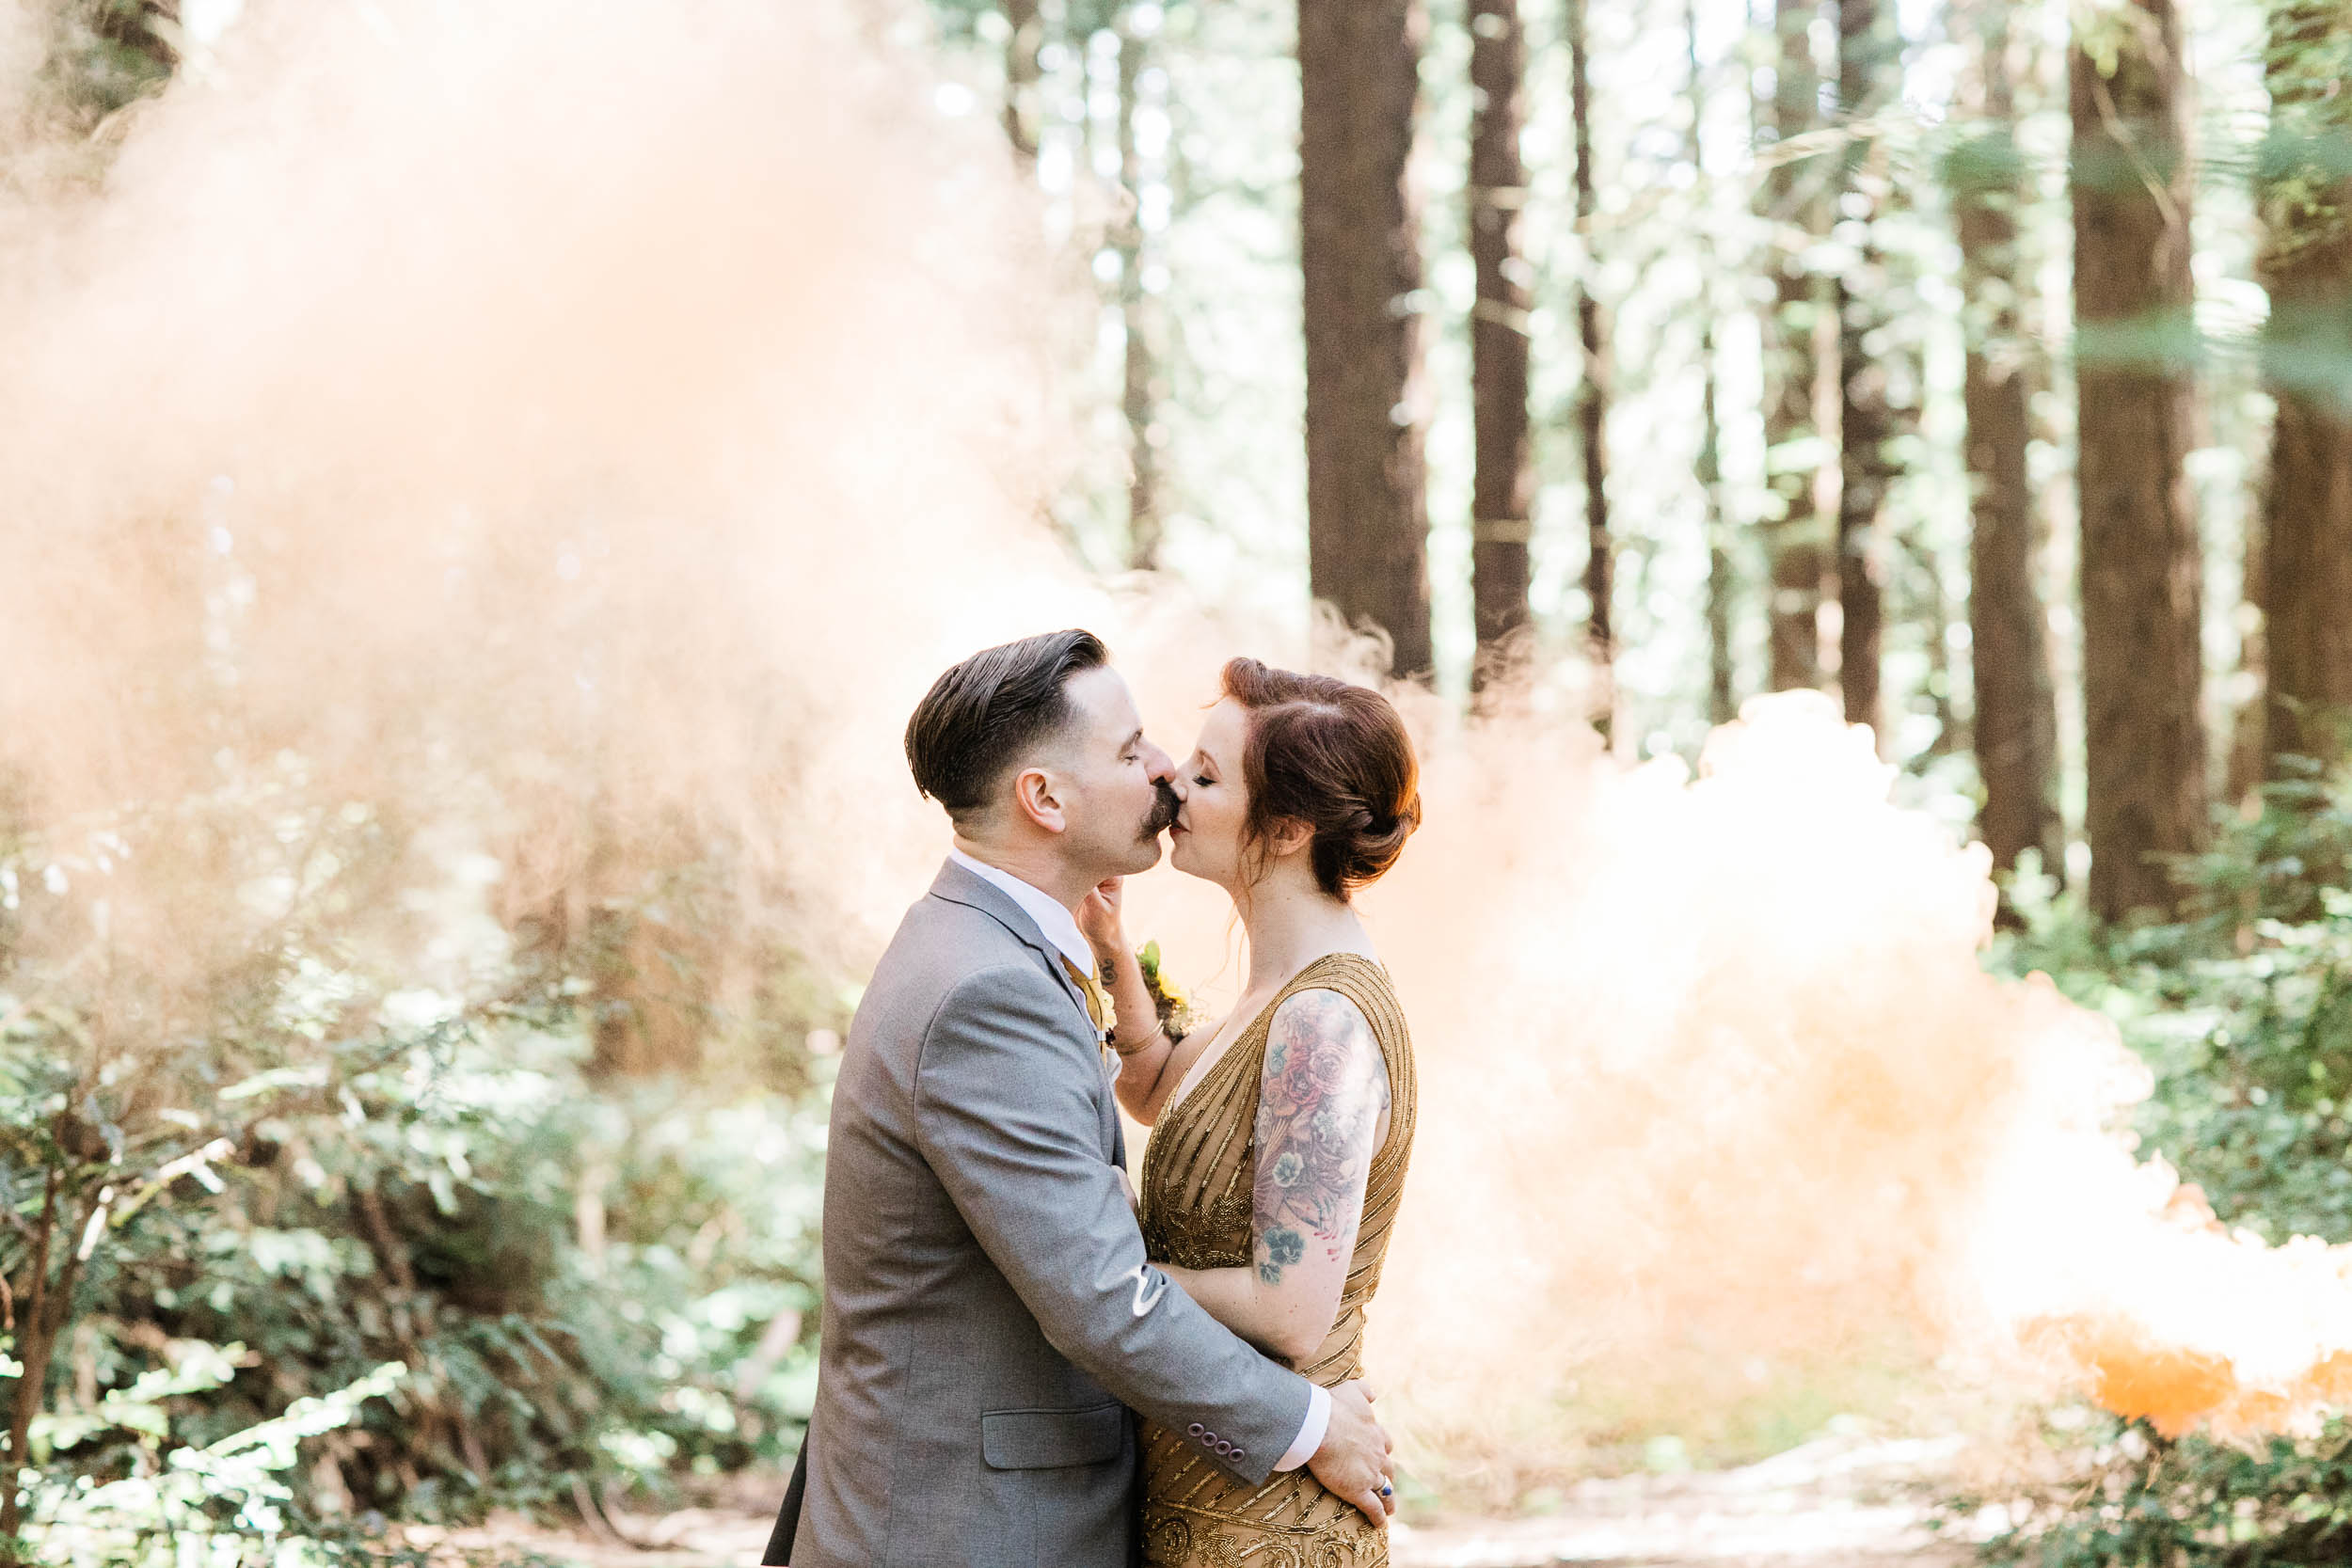 050418_J+S_Redwoods Elopement_Buena Lane Photography_0781.jpg